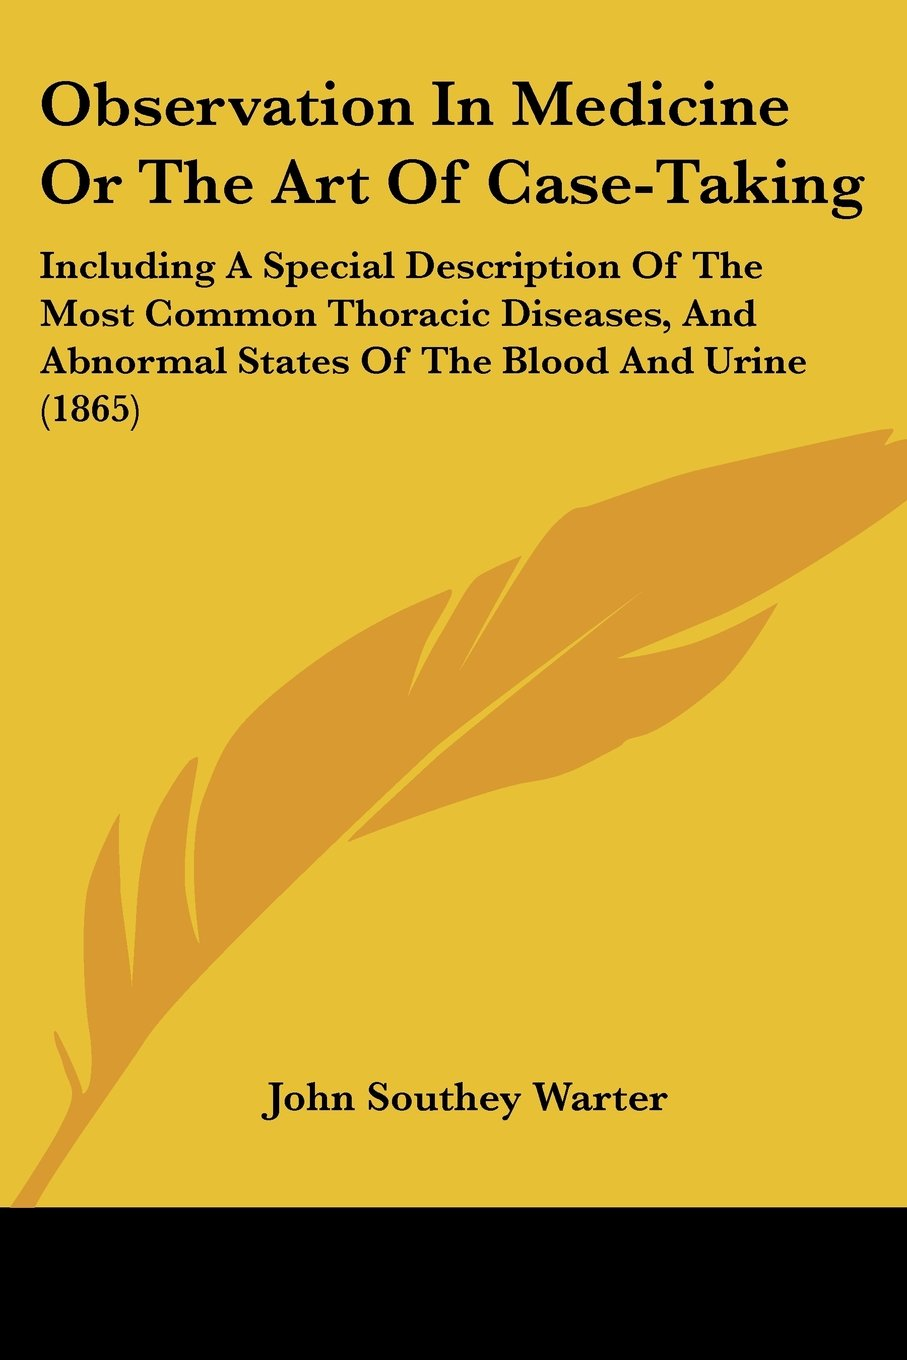 Download Observation In Medicine Or The Art Of Case-Taking: Including A Special Description Of The Most Common Thoracic Diseases, And Abnormal States Of The Blood And Urine (1865) pdf epub